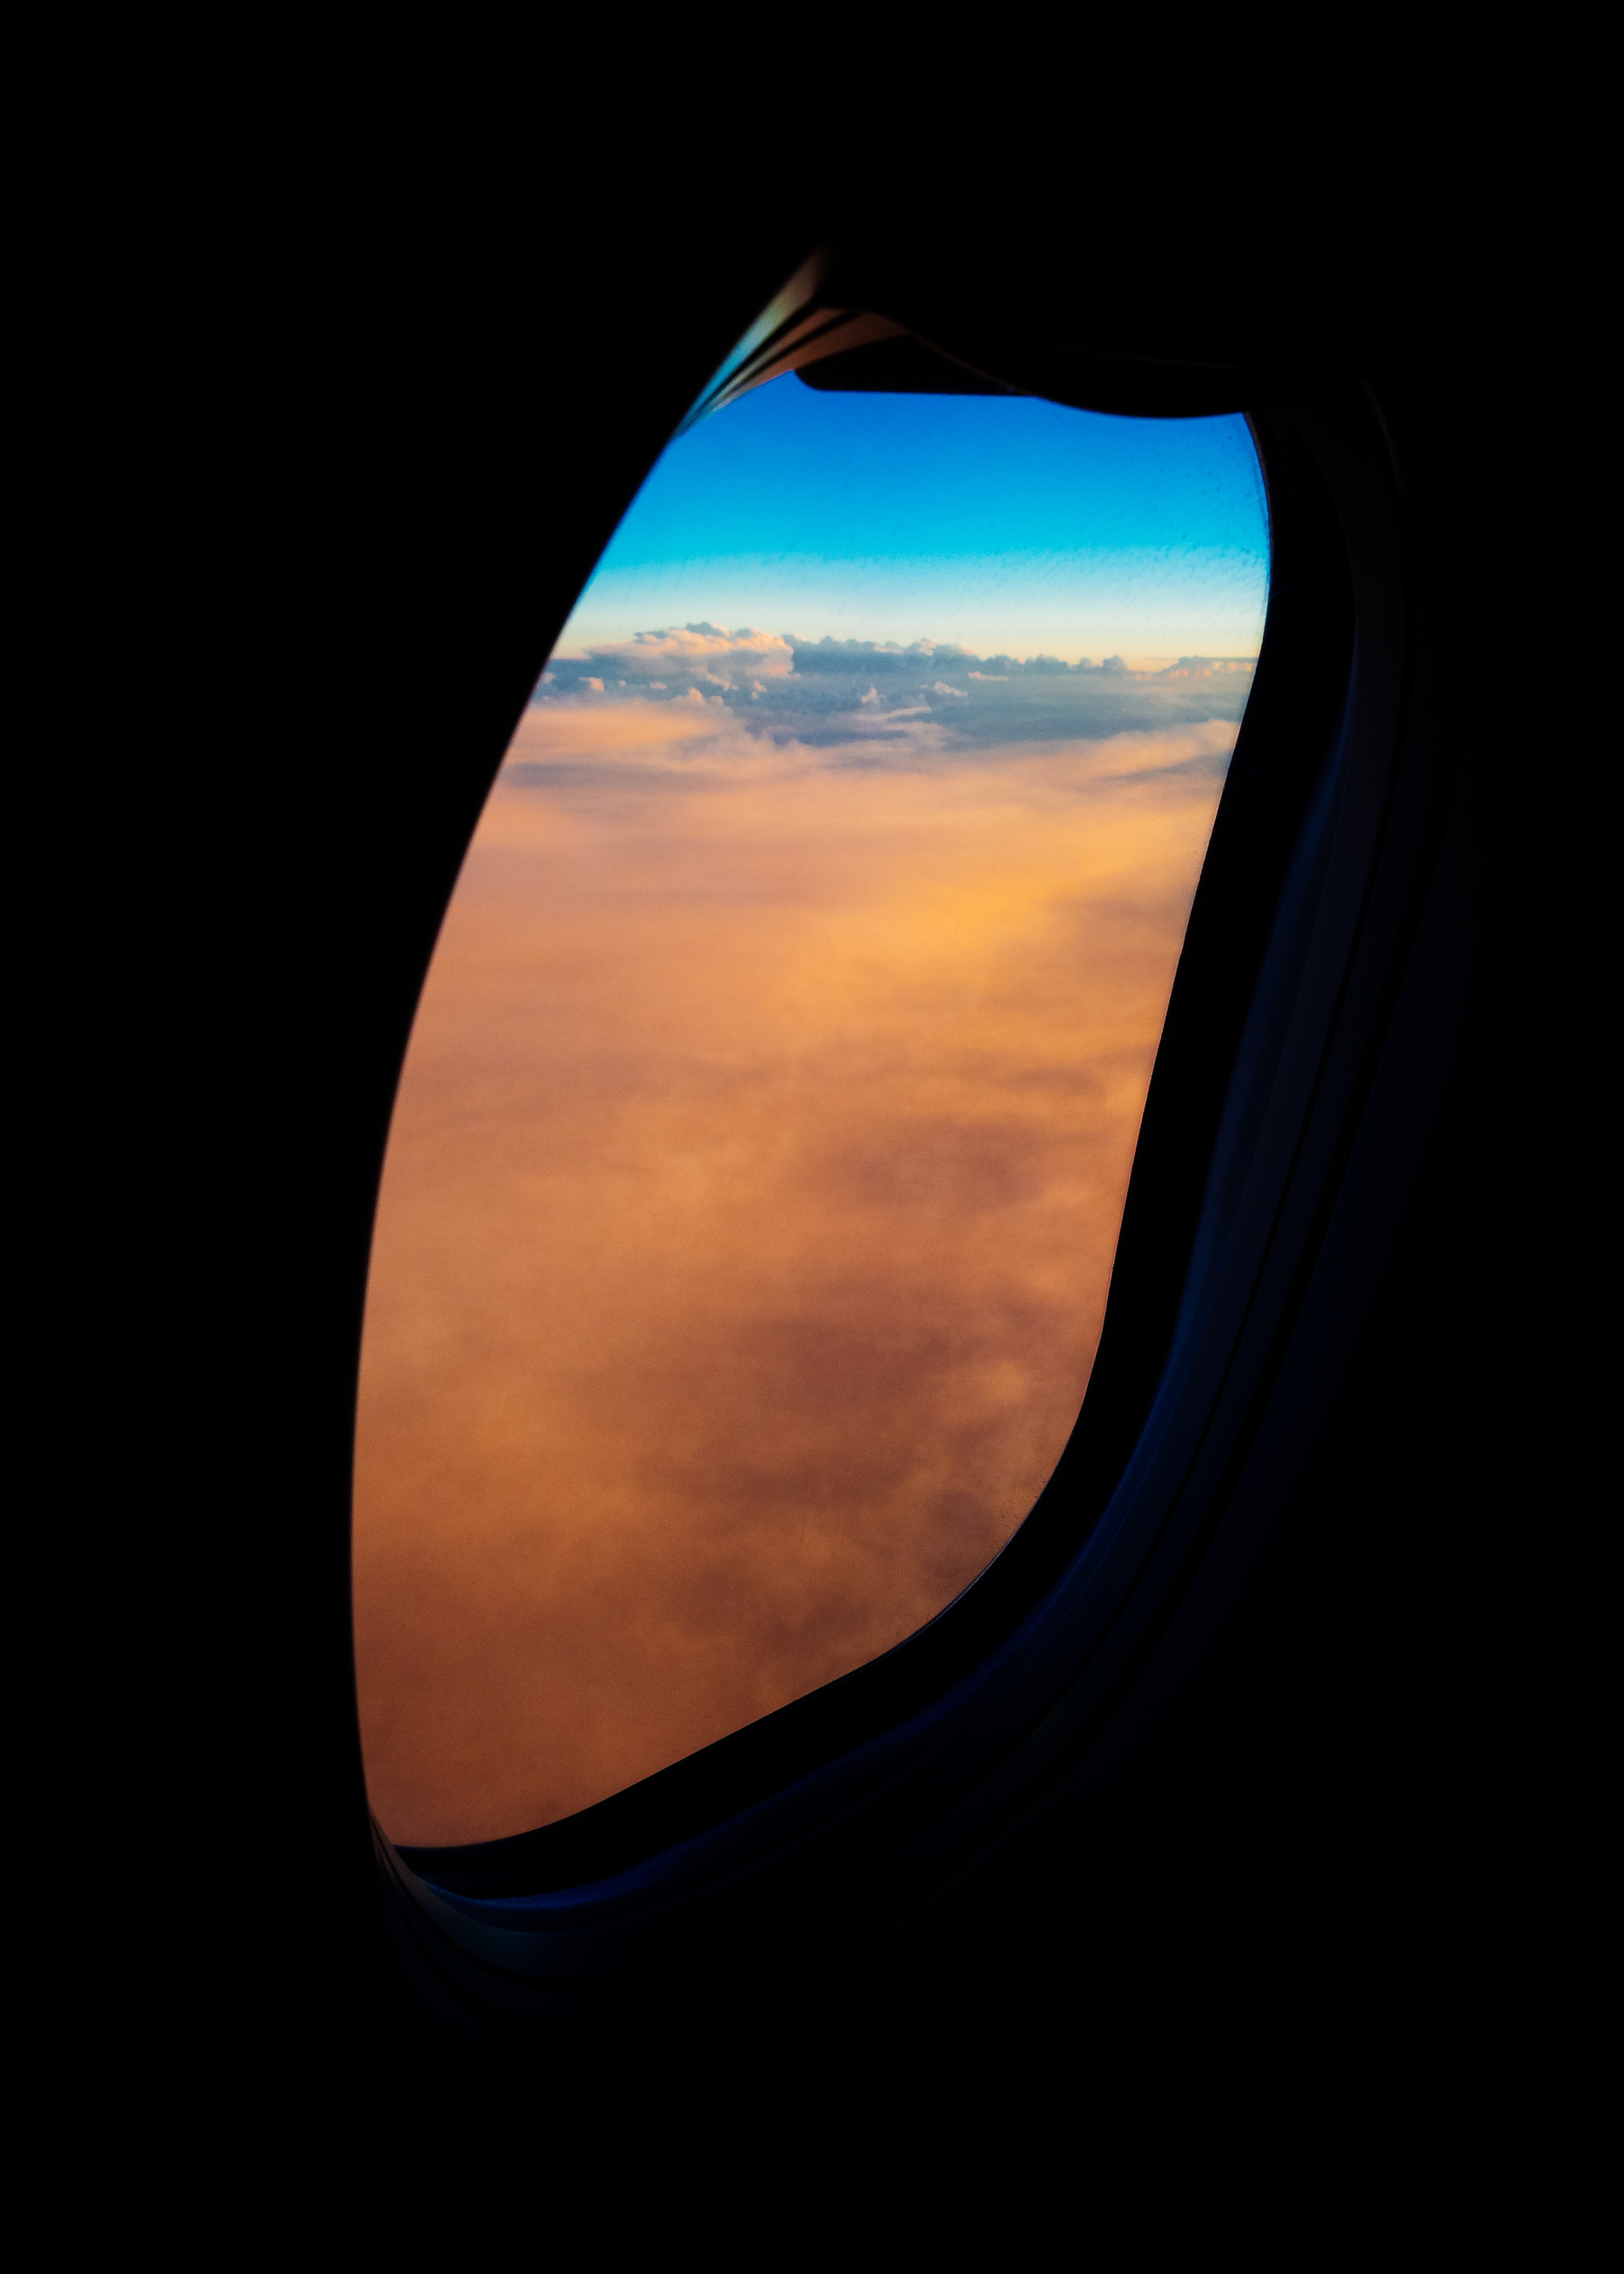 aircraft window overlooking orange clouds during daytime